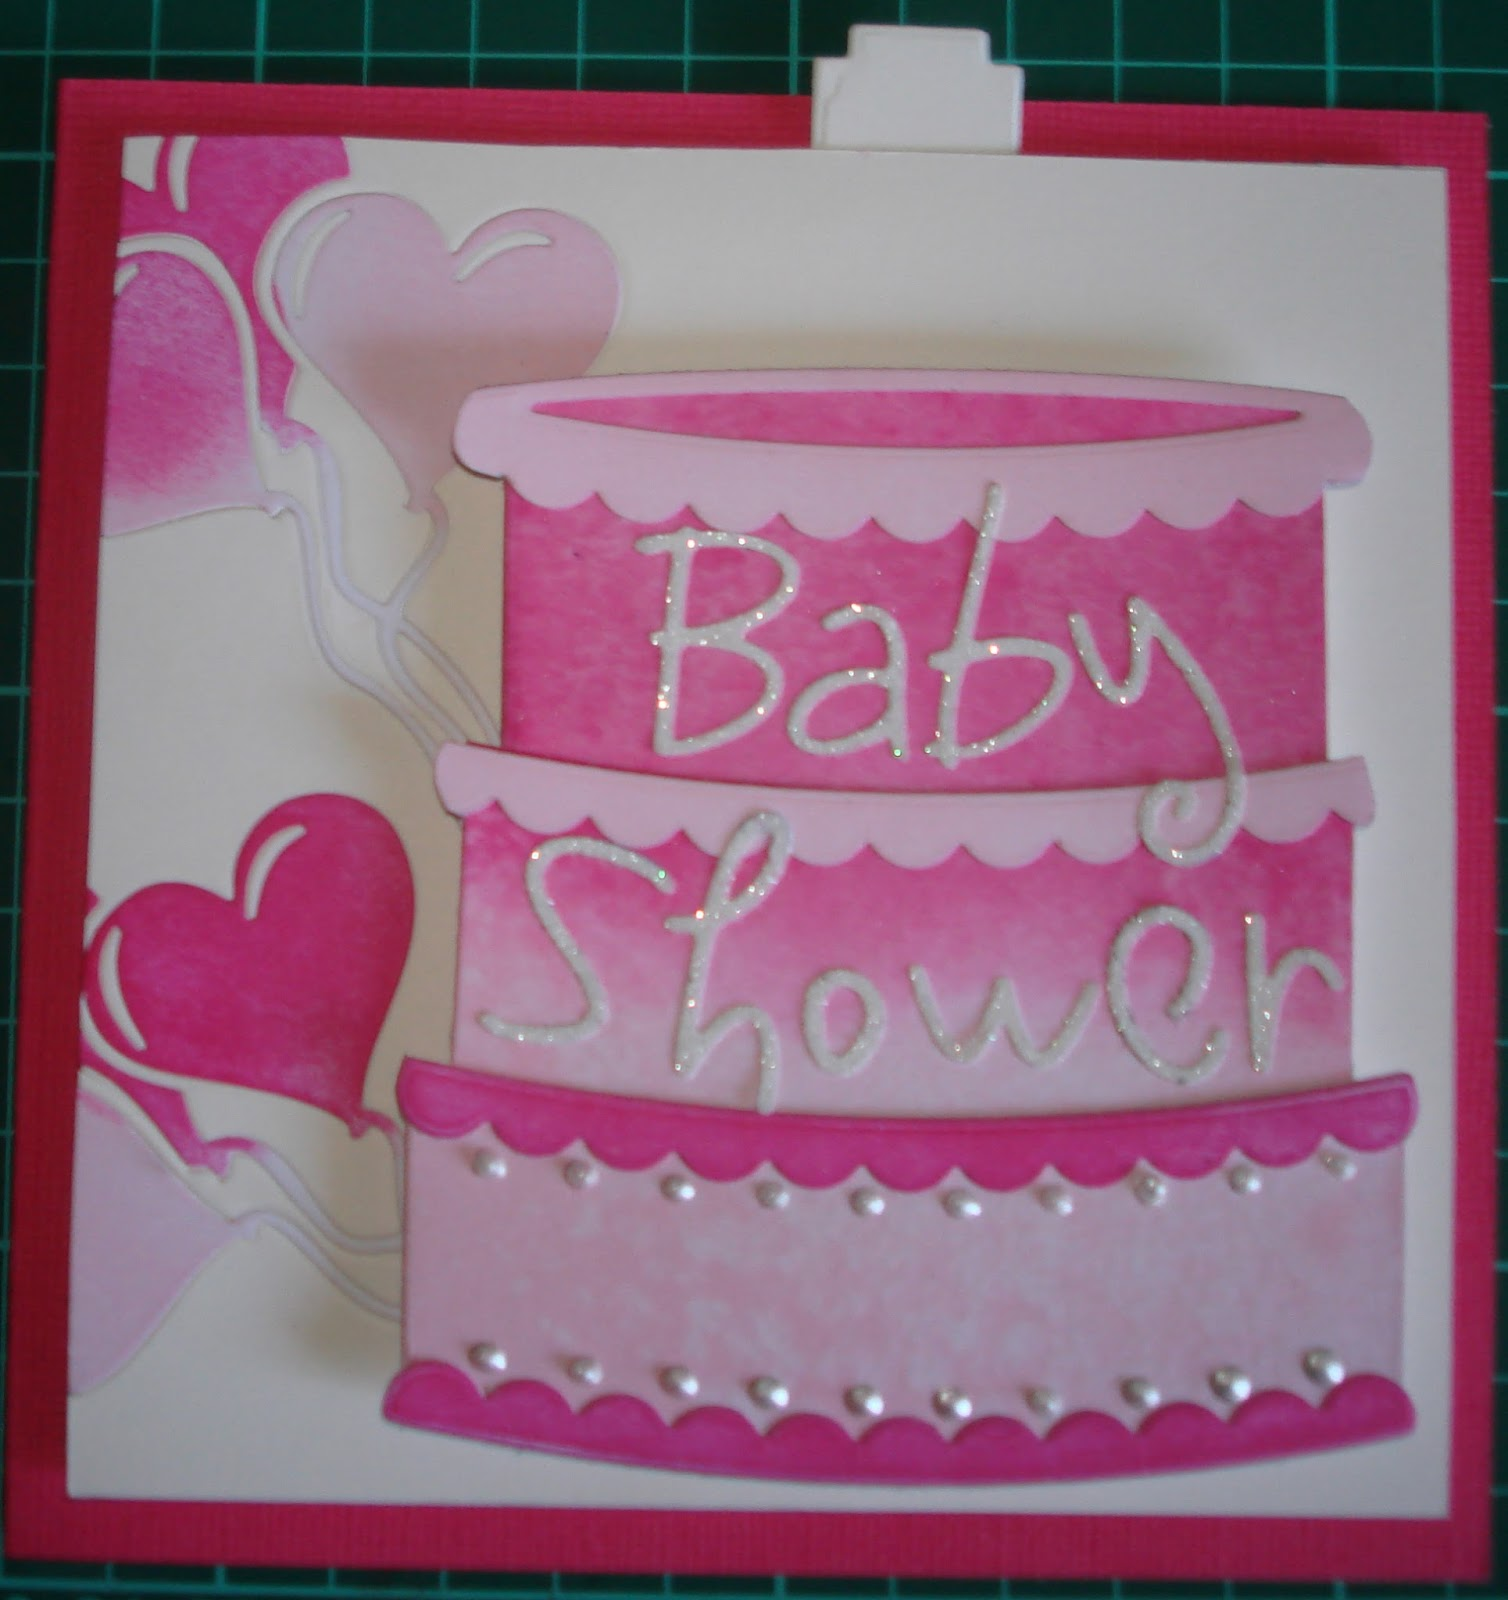 Lorraine Lives Here Baby Shower Card For A Girl-2021